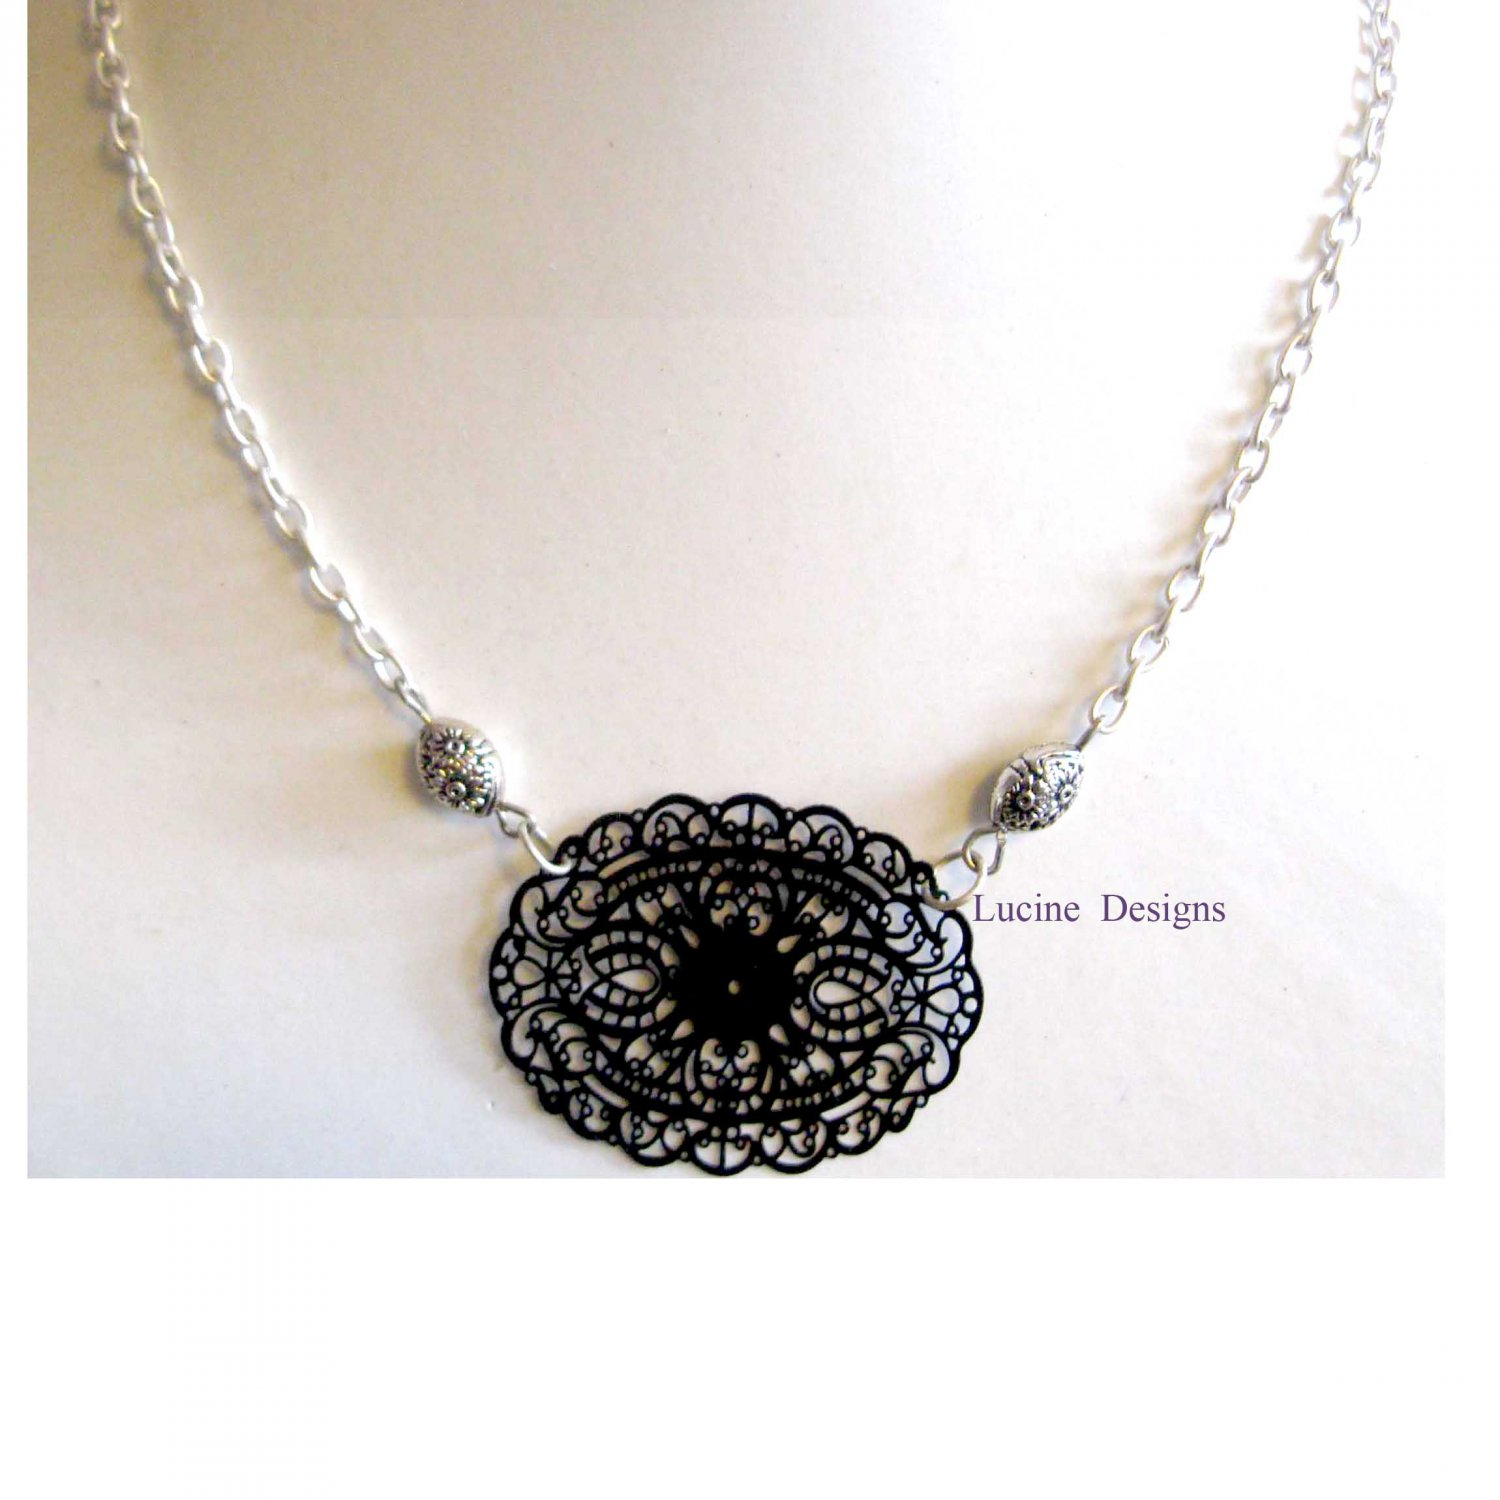 Silver necklace with lasercut black